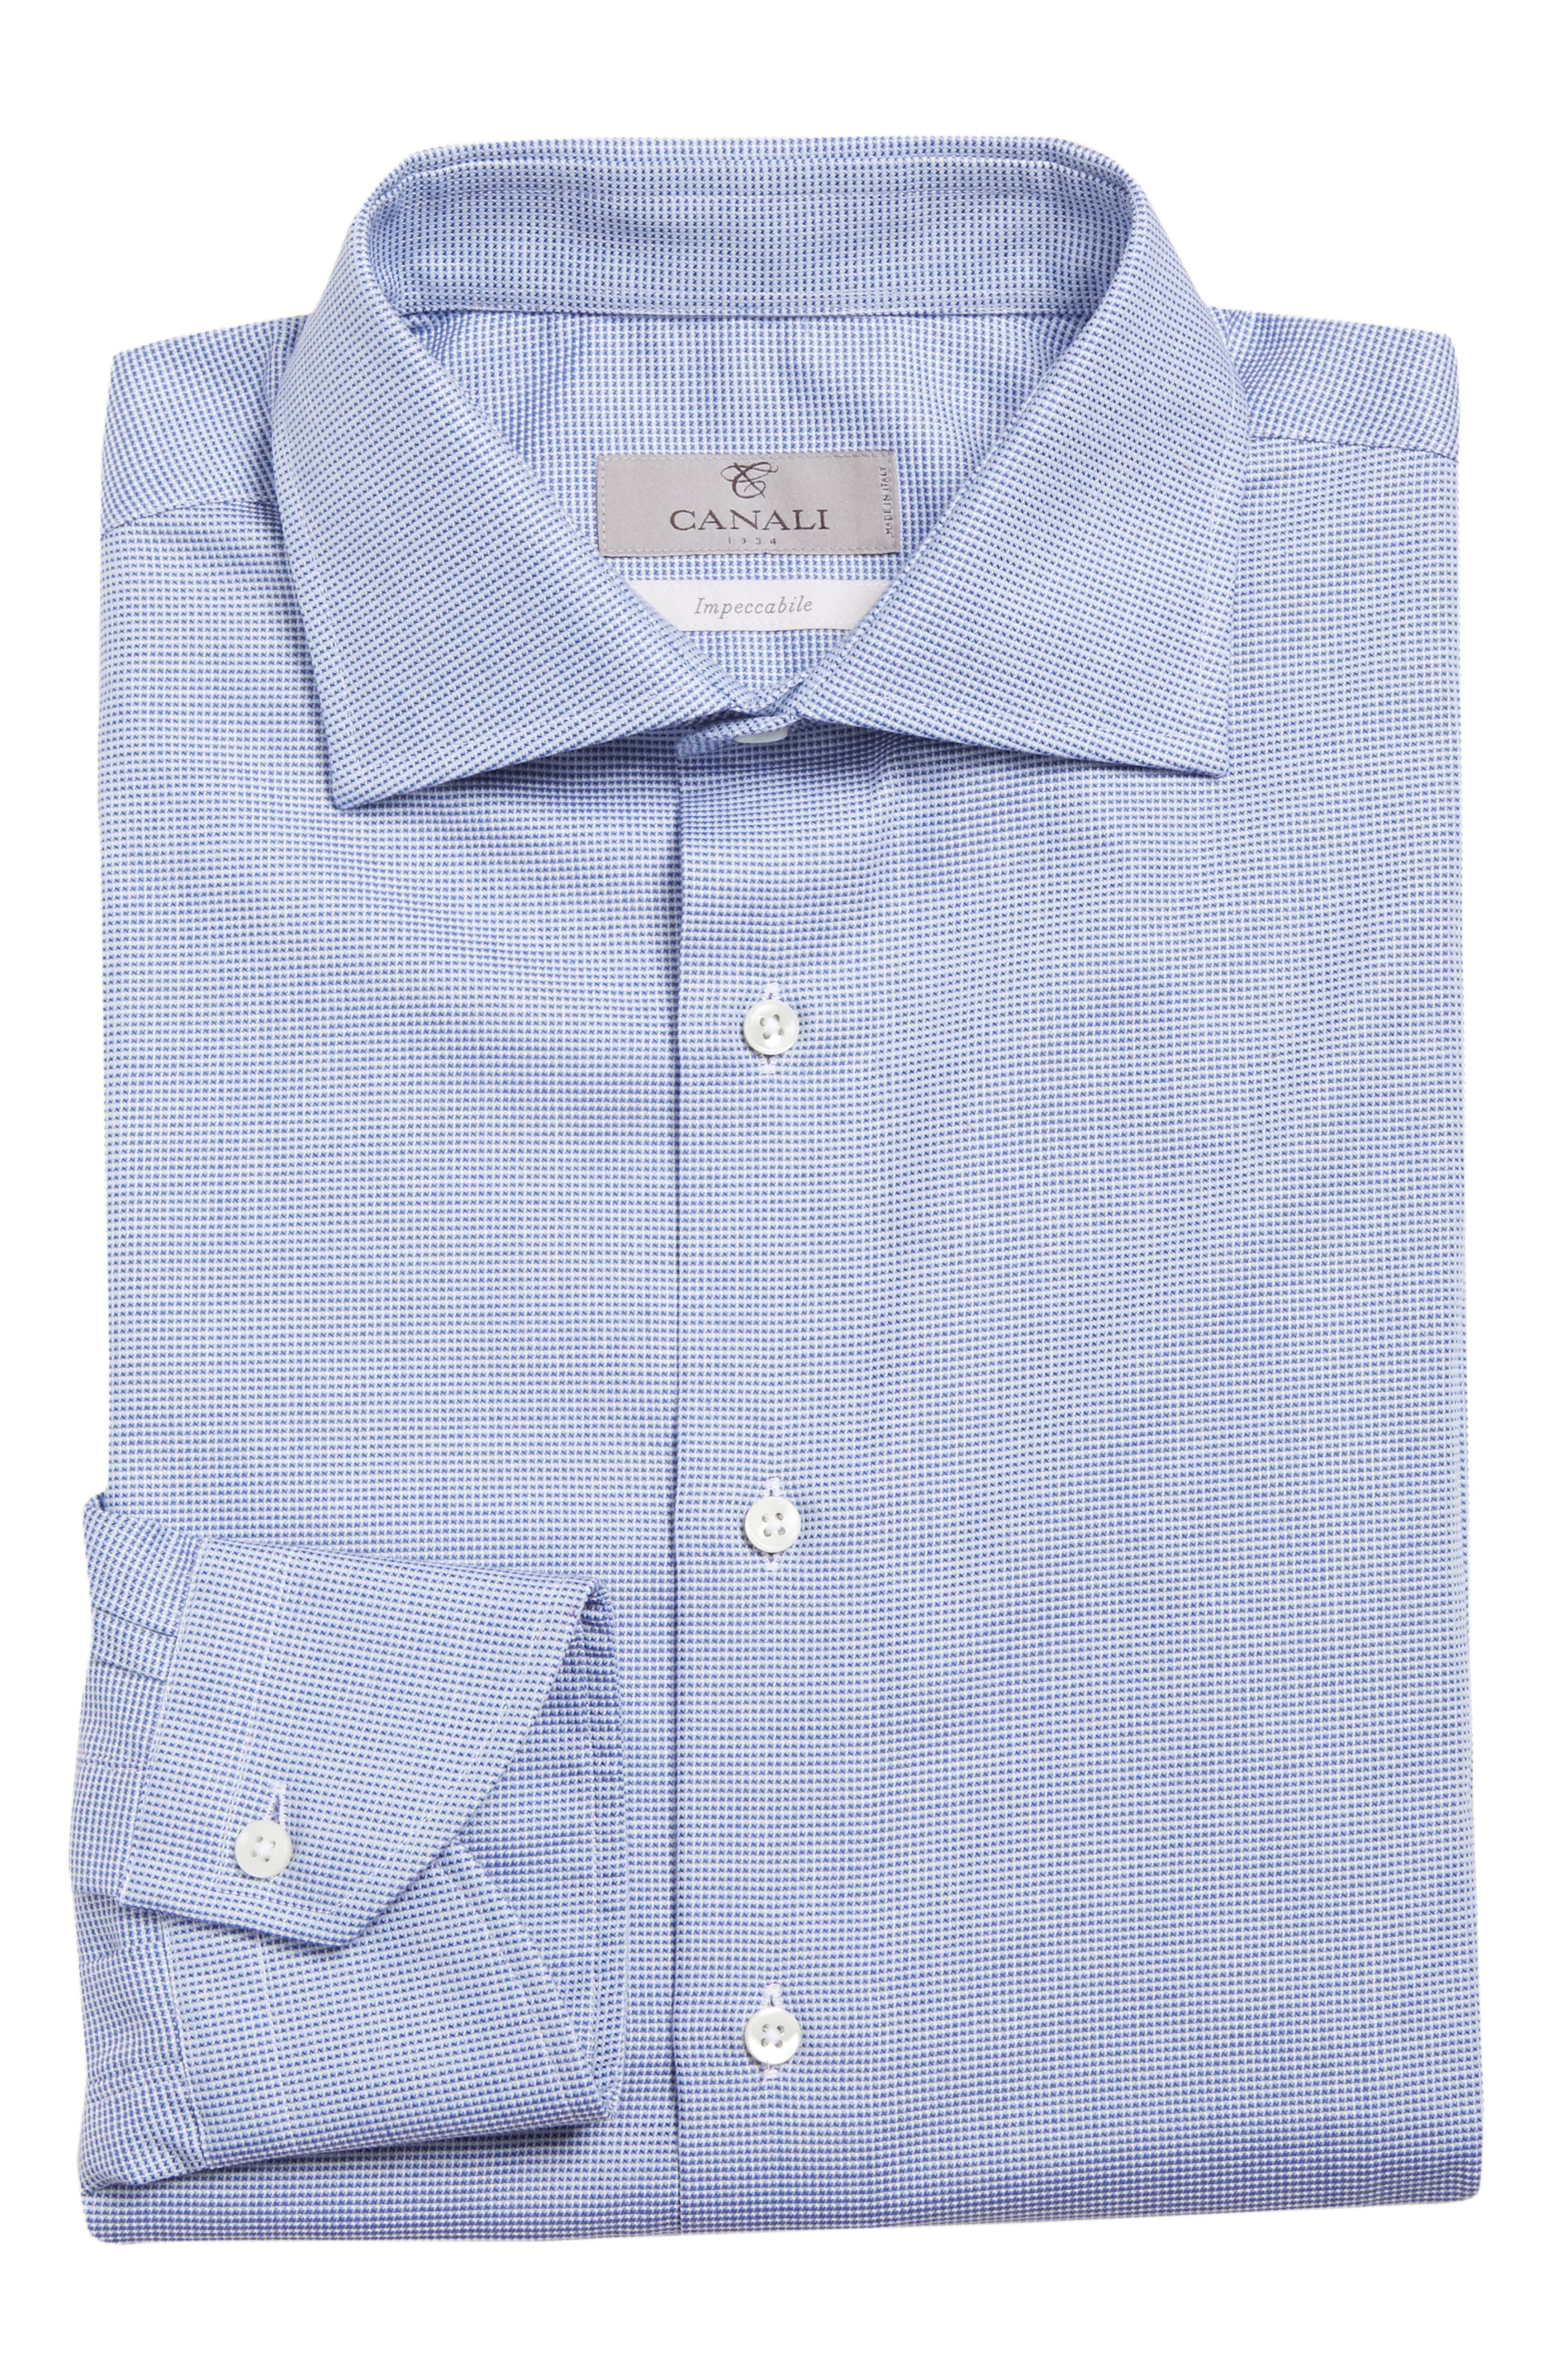 CANALI,                             Regular Fit Solid Dress Shirt,                             Alternate thumbnail 5, color,                             401